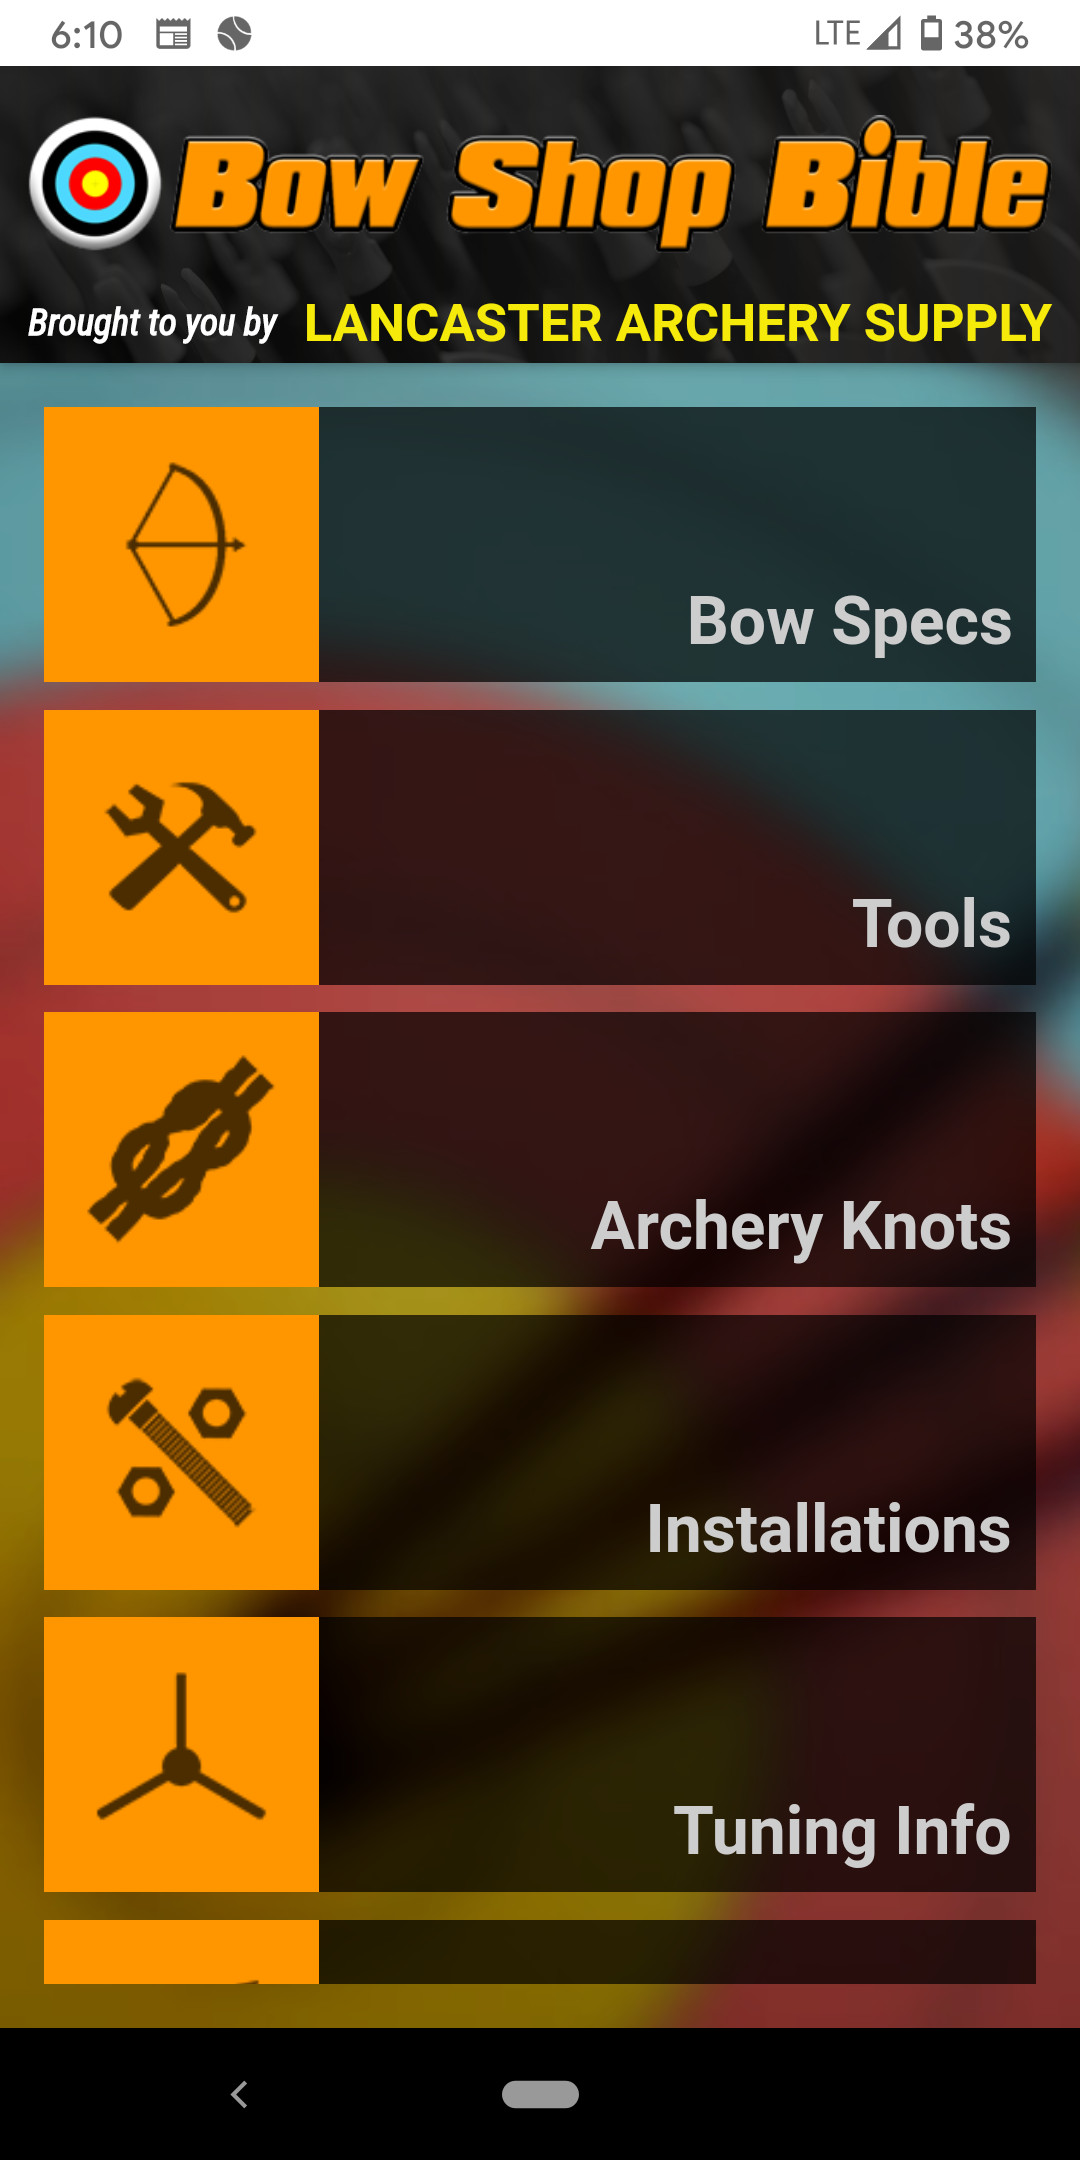 Screenshot of the Bow Shop Bible app. Credit: Dale Bowman